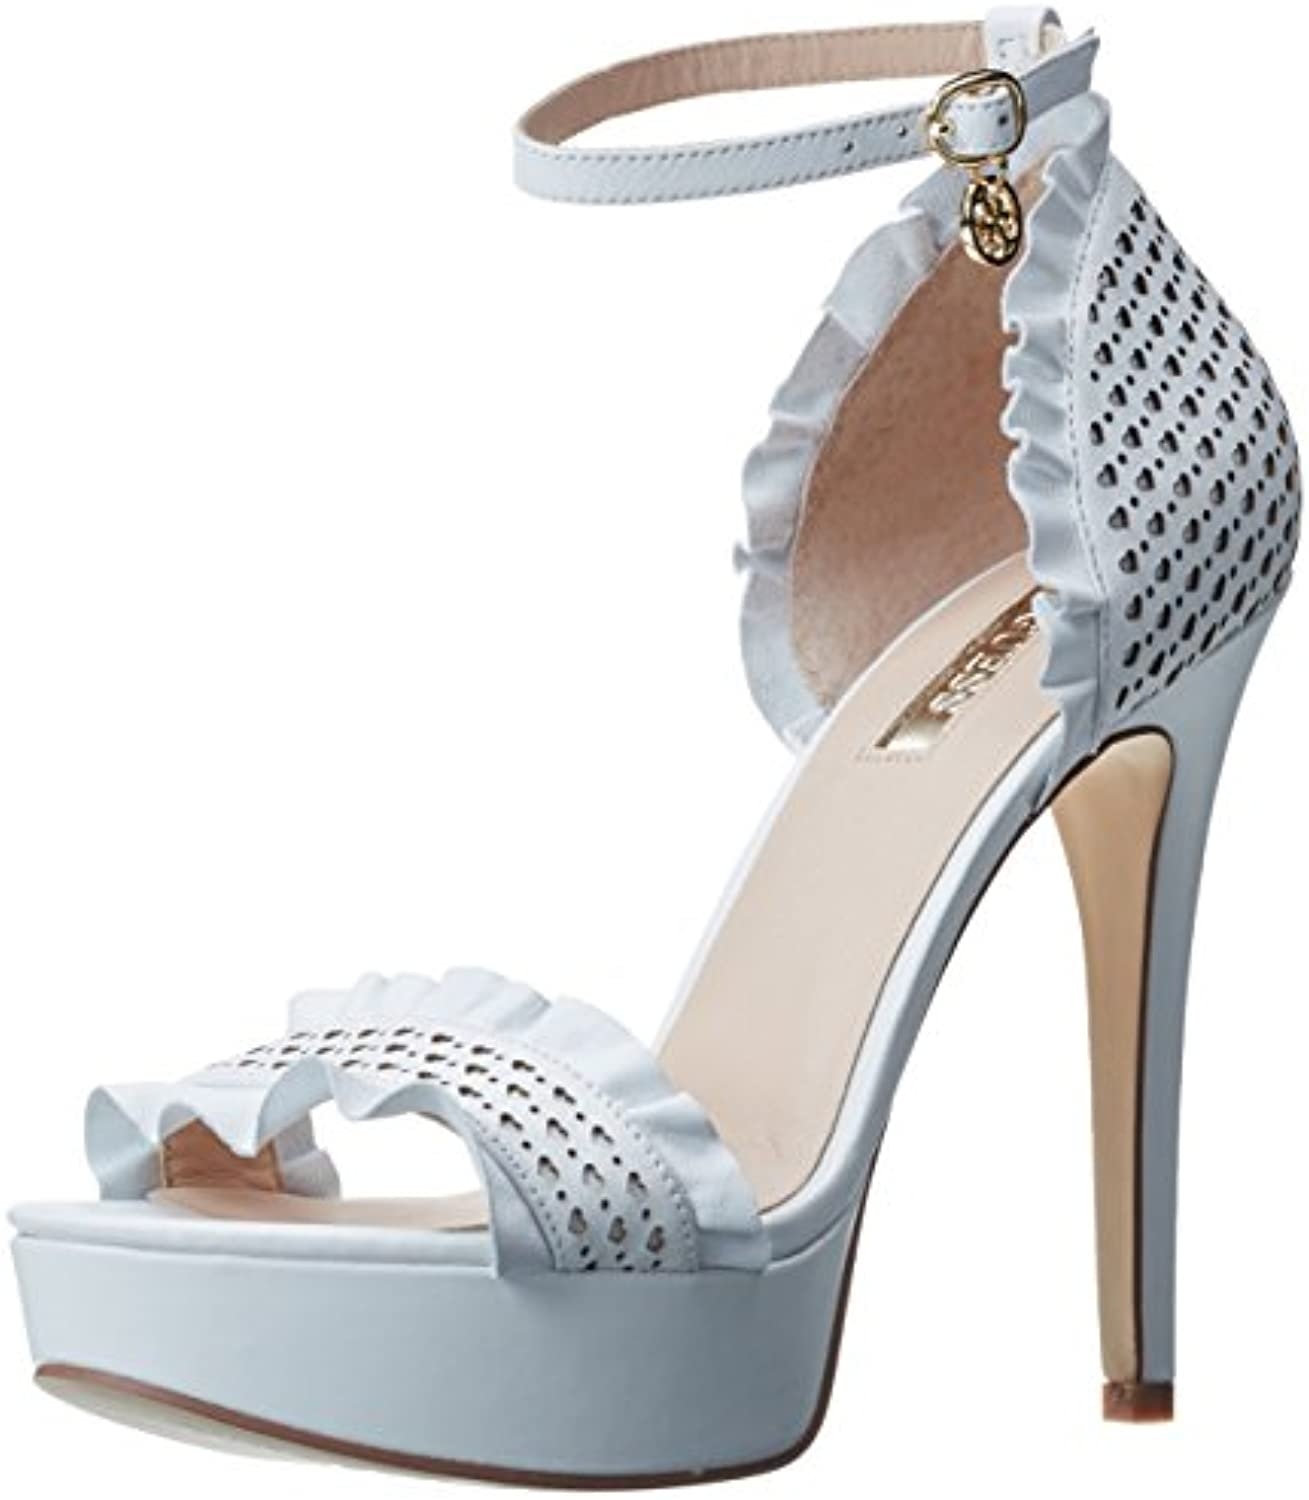 Guess Damen Kalyn Lea03 T-Spangen Pumps 37 EU